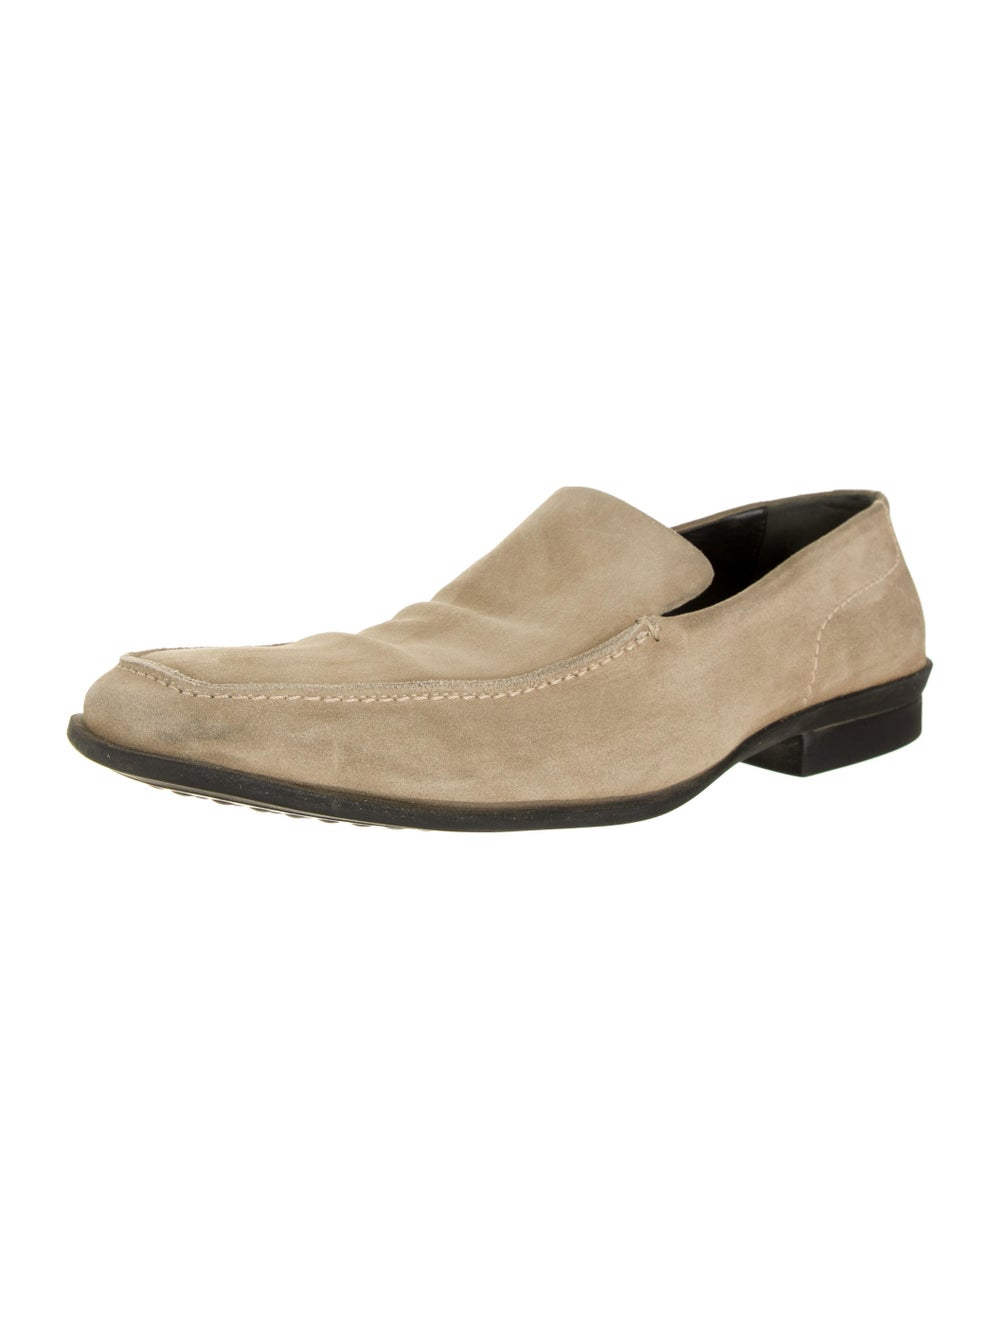 Gucci Suede Dress Loafers - image 2